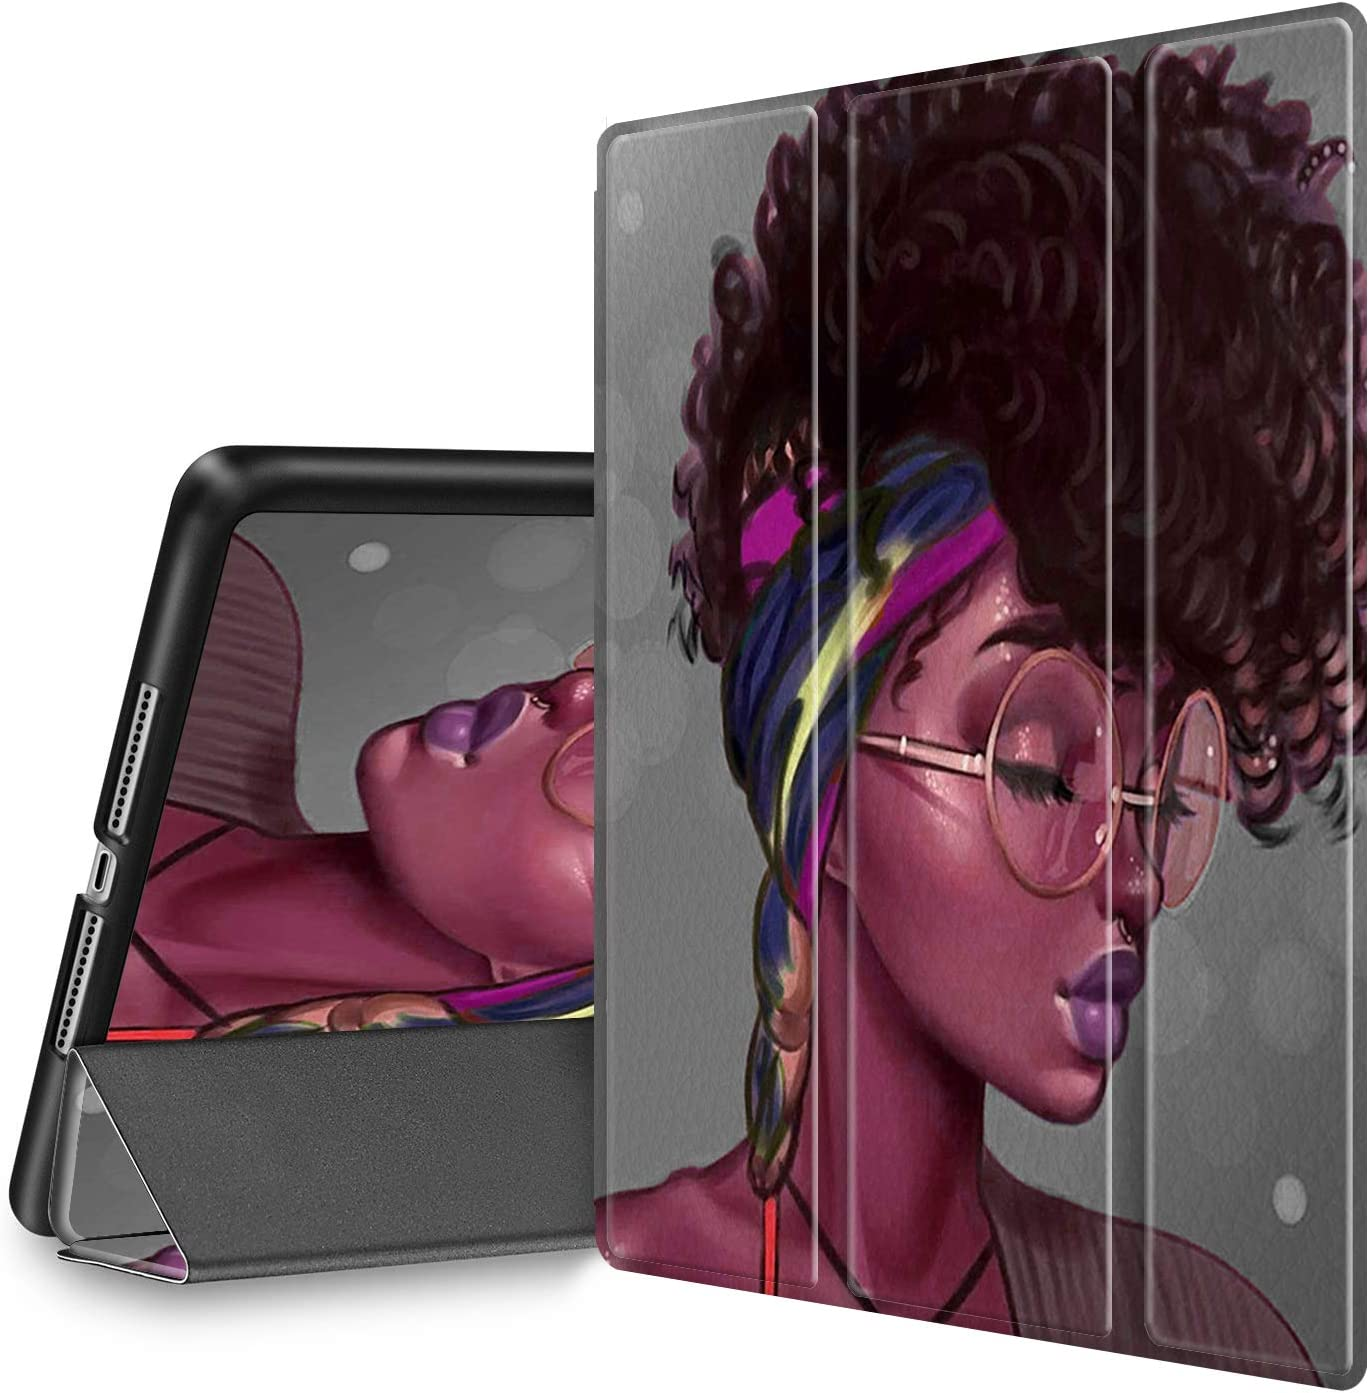 iPad 9.7 2018/2017 Case, Spsun Slim Lightweight with Pencil Holder, Magnetic Auto Sleep/Wake Back Smart Cover for iPad 9.7 inch 5th/6th Generation,African Afro Girls Women